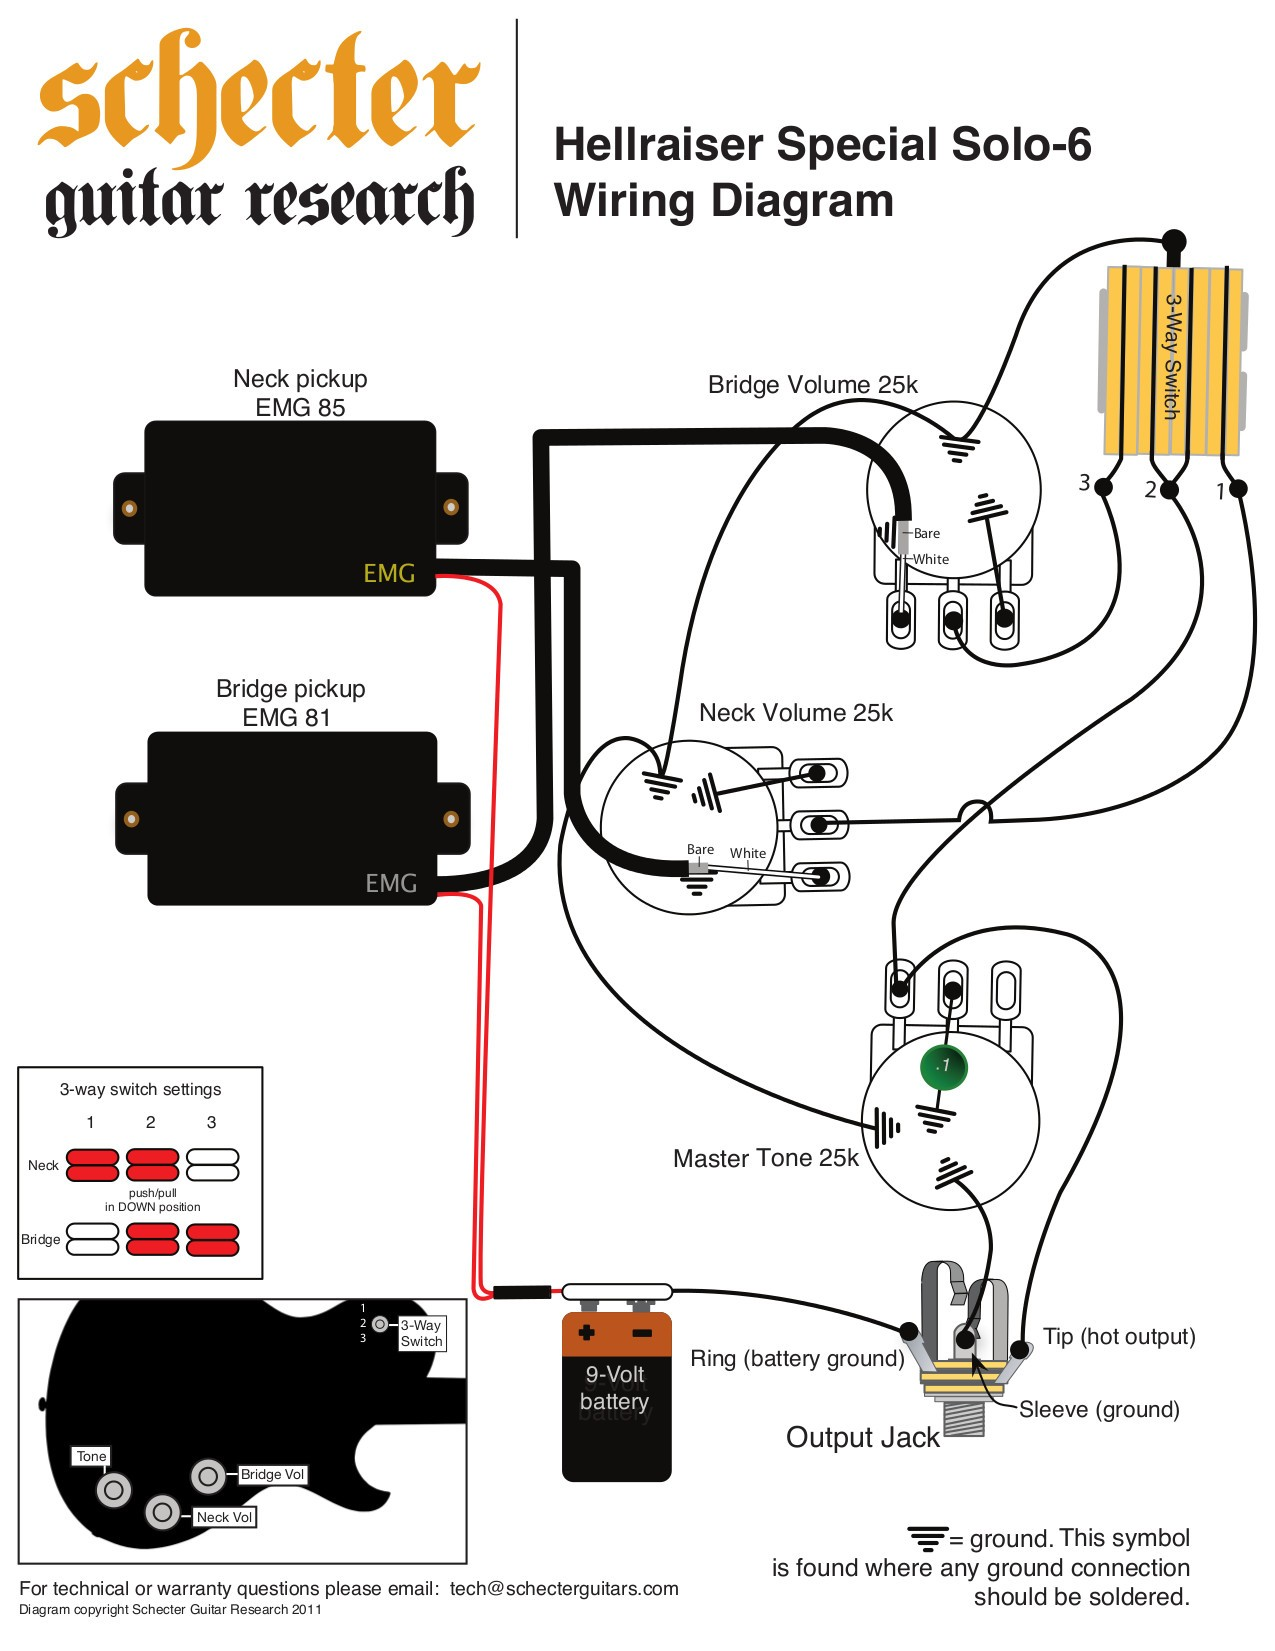 Schecter Diamond Series Wiring Diagram Inspirational Mosrite Guitar Fancy Emg Hz Ornament Electrical Ideas Of